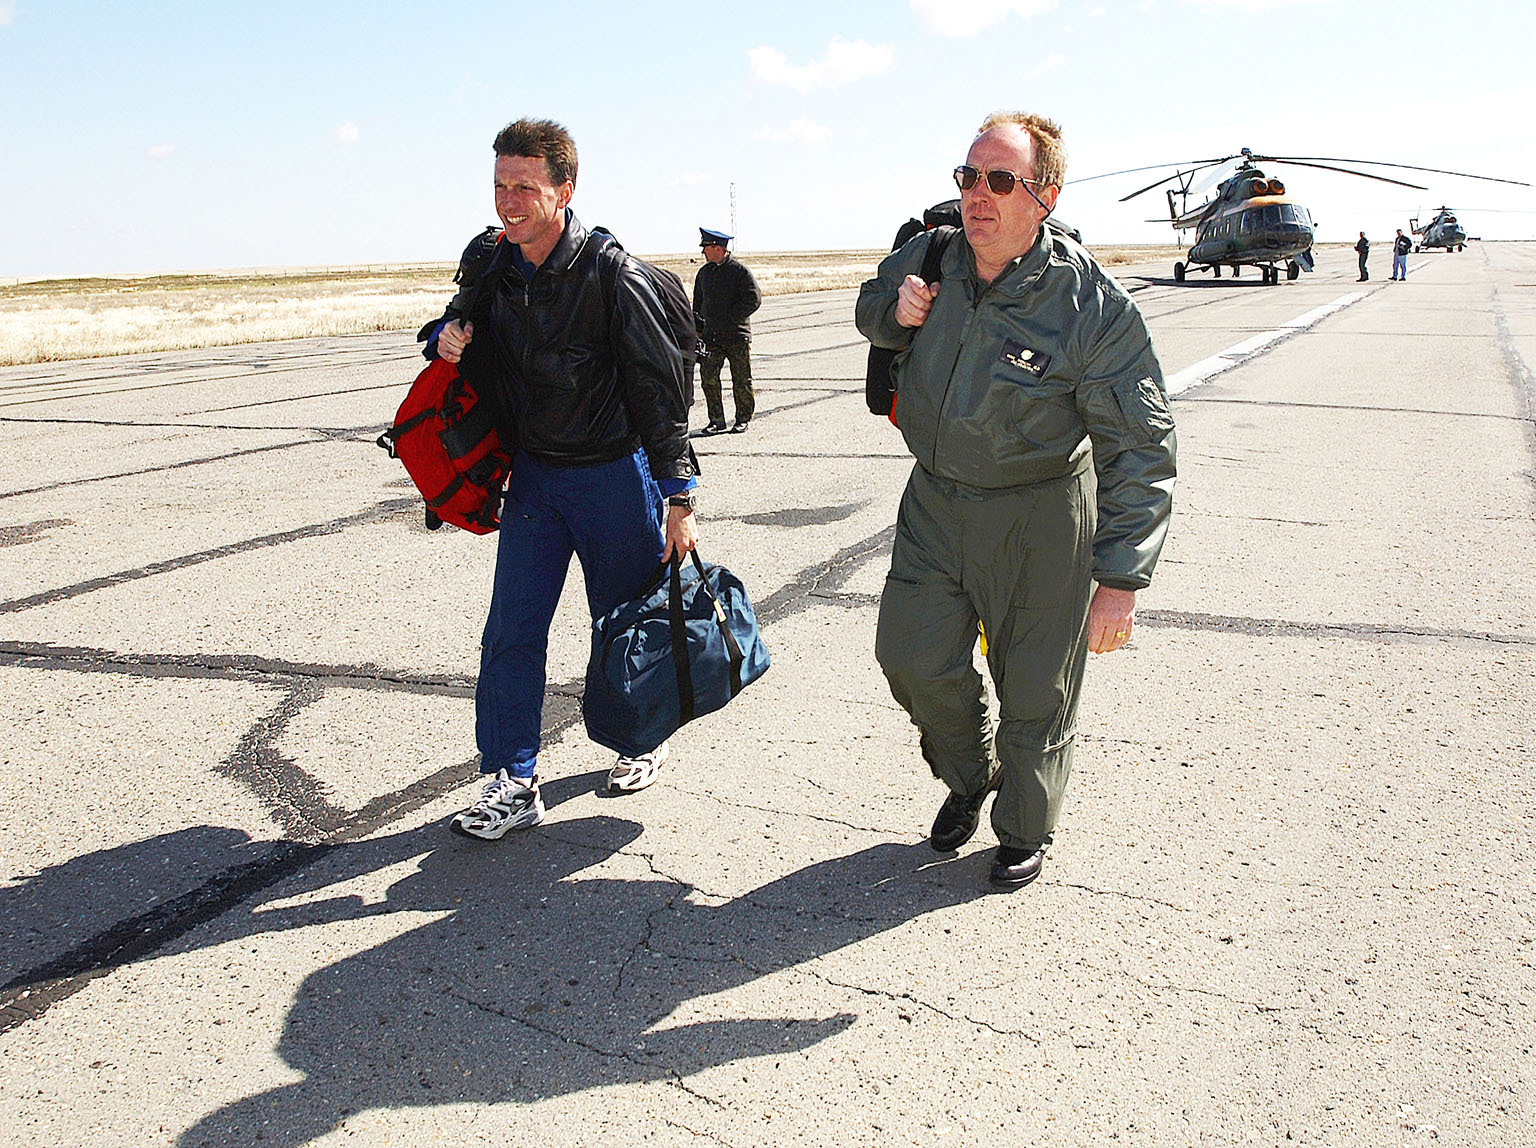 KAZAKHSTAN - Astronaut Michael Foale (left) and Mike Duncan (right), Expedition Six lead flight surgeon, move to the lead helicopter after the landing team helicopters needed to return for refueling. Foale and Duncan went on from the refueling to meet the crew of Expedition Six at the landing site. The Expedition Six crew spent 161 days in space, 159 manning the International Space Station. Photo Credit: NASA/Bill Ingalls